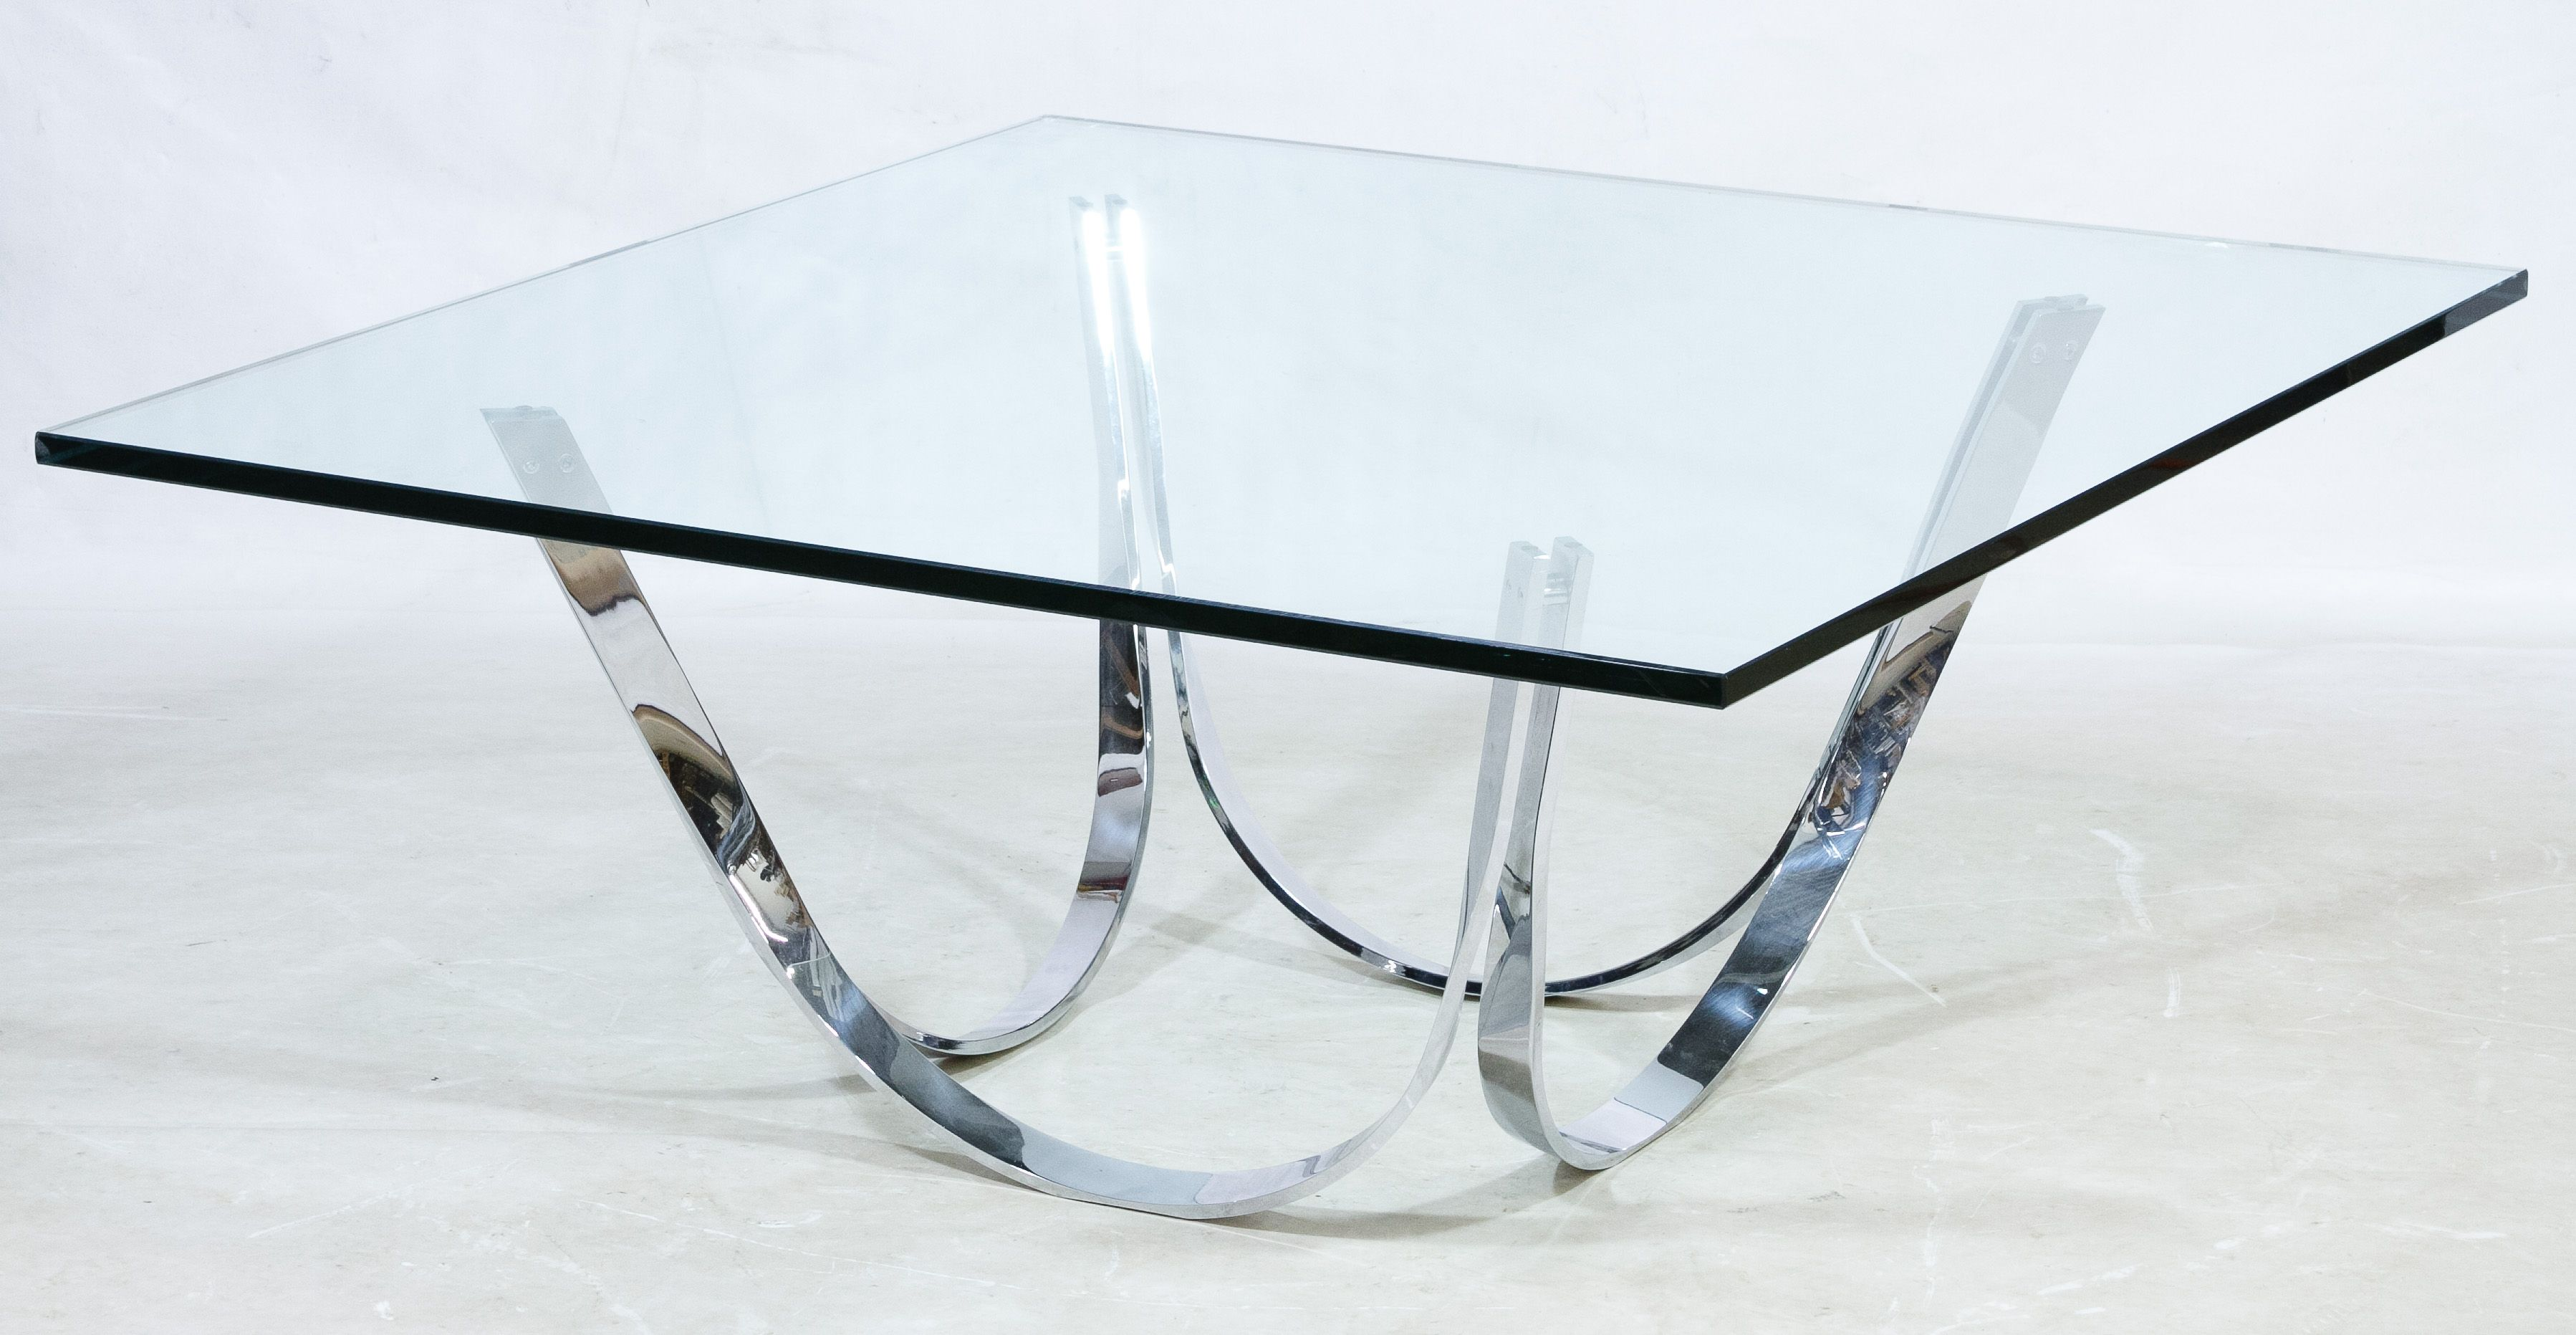 Lot 117 Mid Century Modern Glass and Chrome Coffee Table by Roger